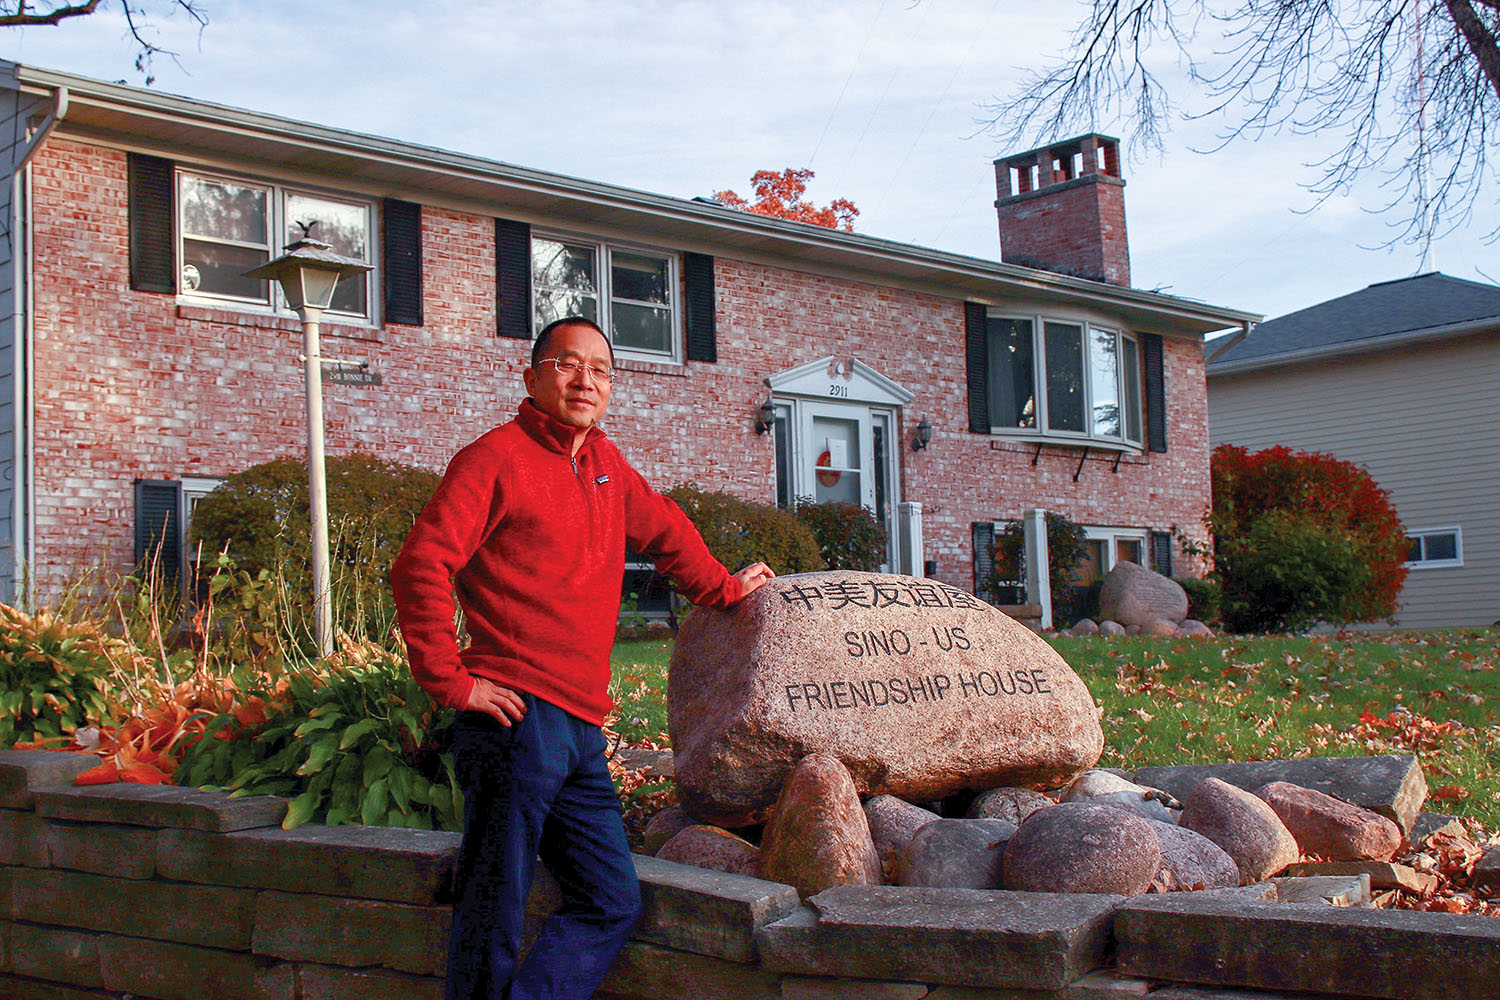 Chinese investor Glad Cheng stands in front of the former private residence where Chinese President Xi stayed in 1985. The home attracts some Chinese tourists to Muscatine and is managed by the city, but Glad pays the taxes and maintenance. (Photo by Emery Styron)